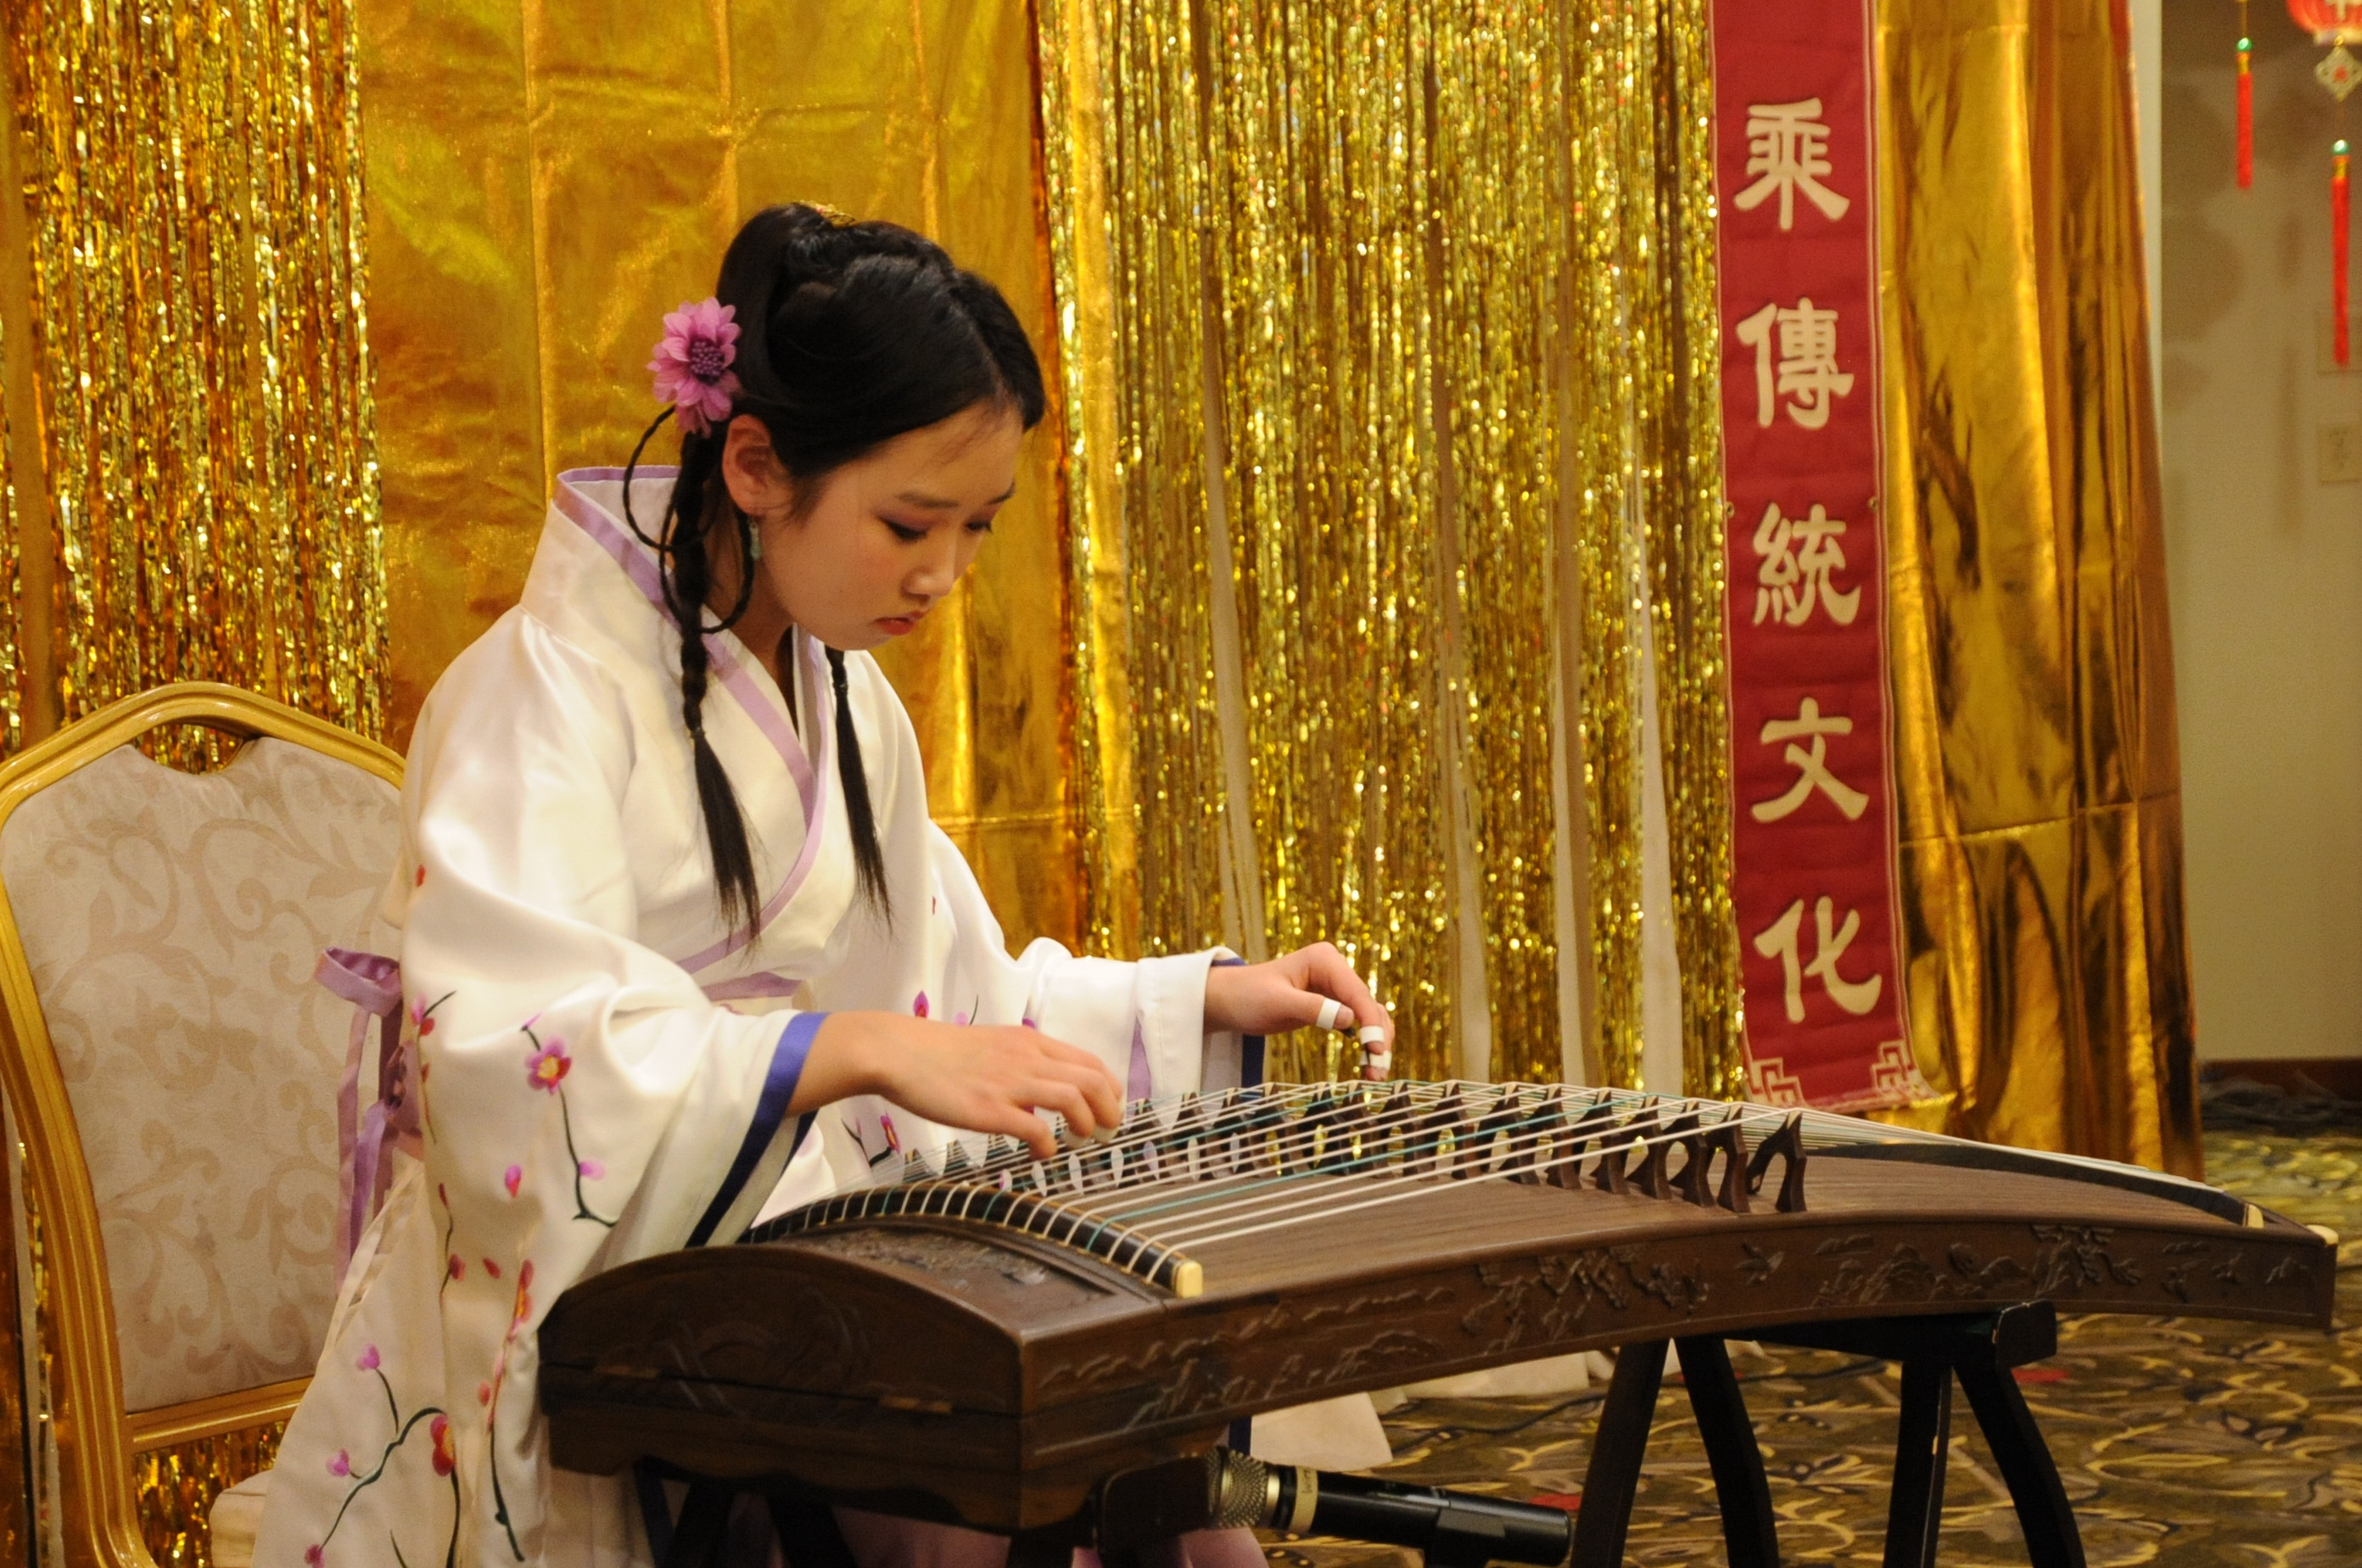 A solo performance with guzheng, an ancient Chinese instrument, at the Epoch Times Chinese New Year celebration event in Edmonton on Feb. 6, 2016 (Jerry Wu/Epoch Times)